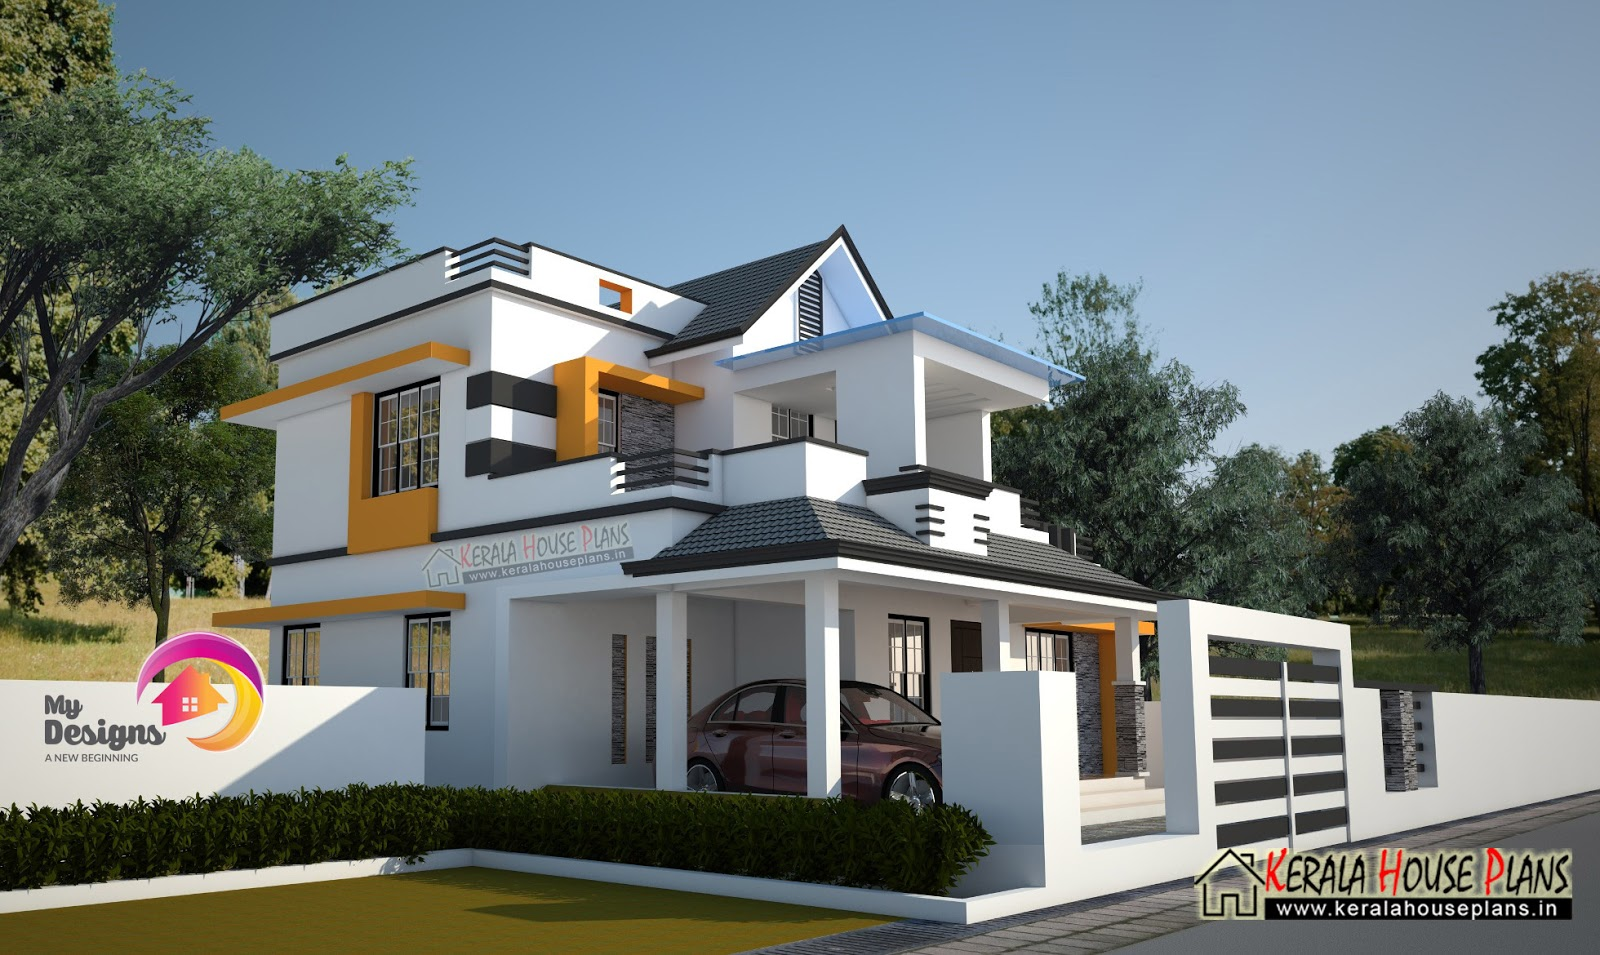 3 bedroom 2 story house design kerala house plans for 2 story house floor plans and elevations